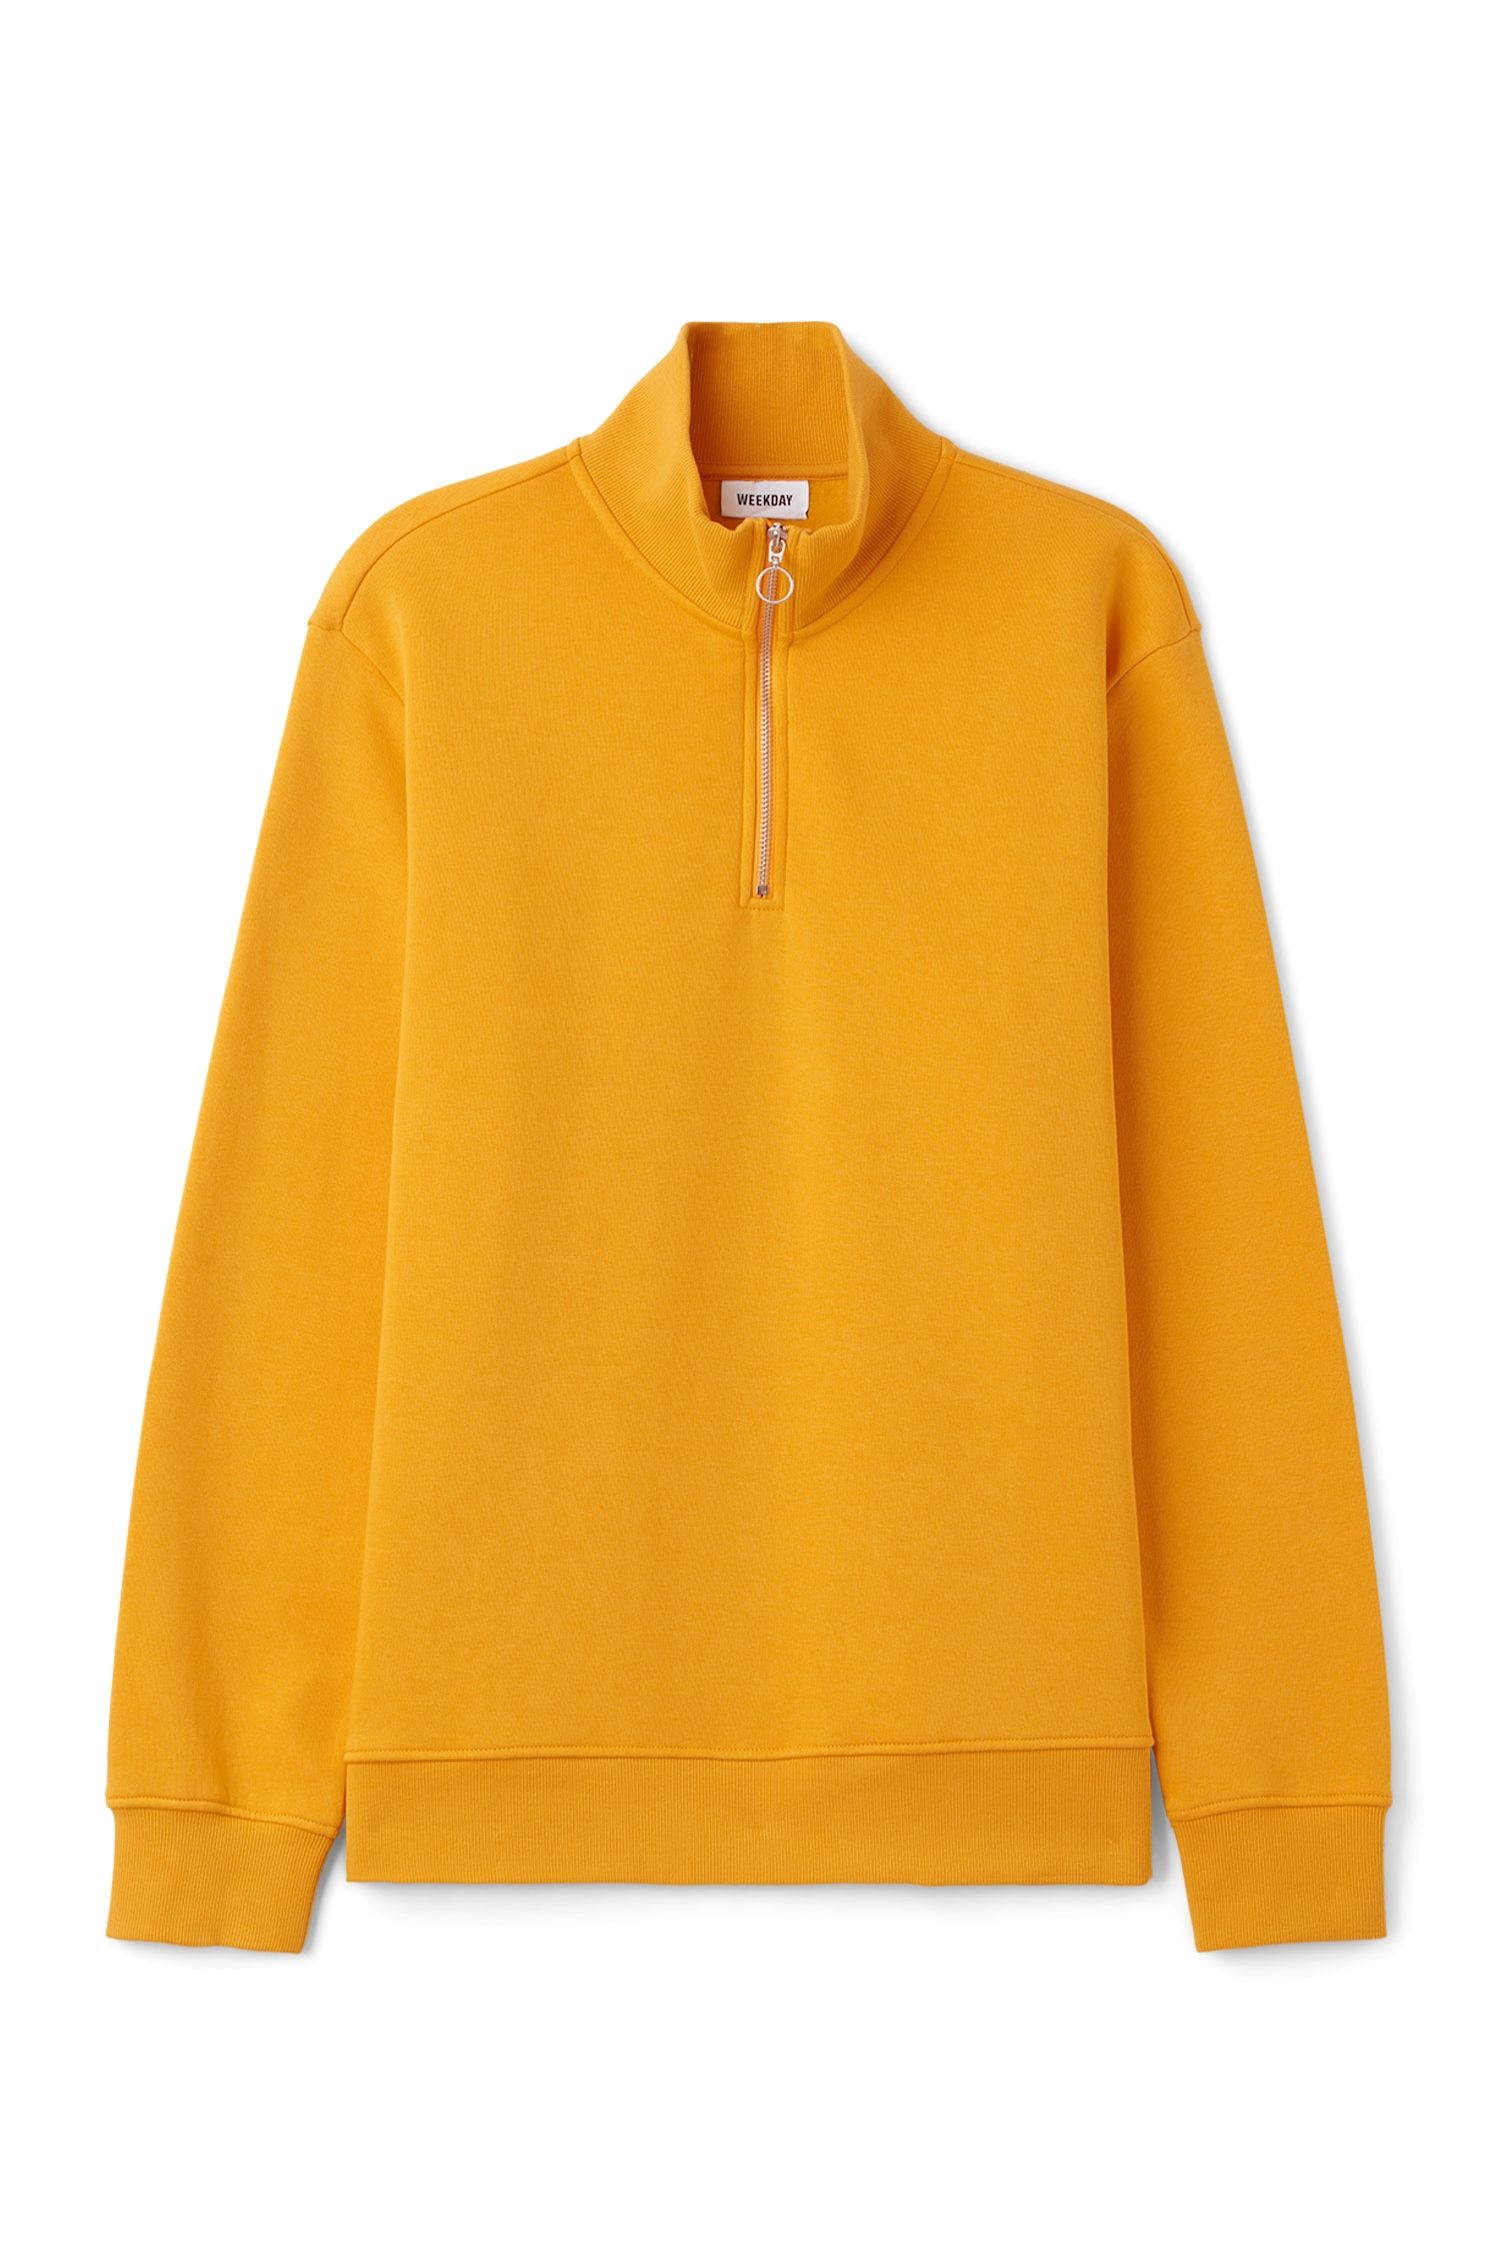 Weekday image 6 of Martin Zip Sweatshirt in Yellow Reddish